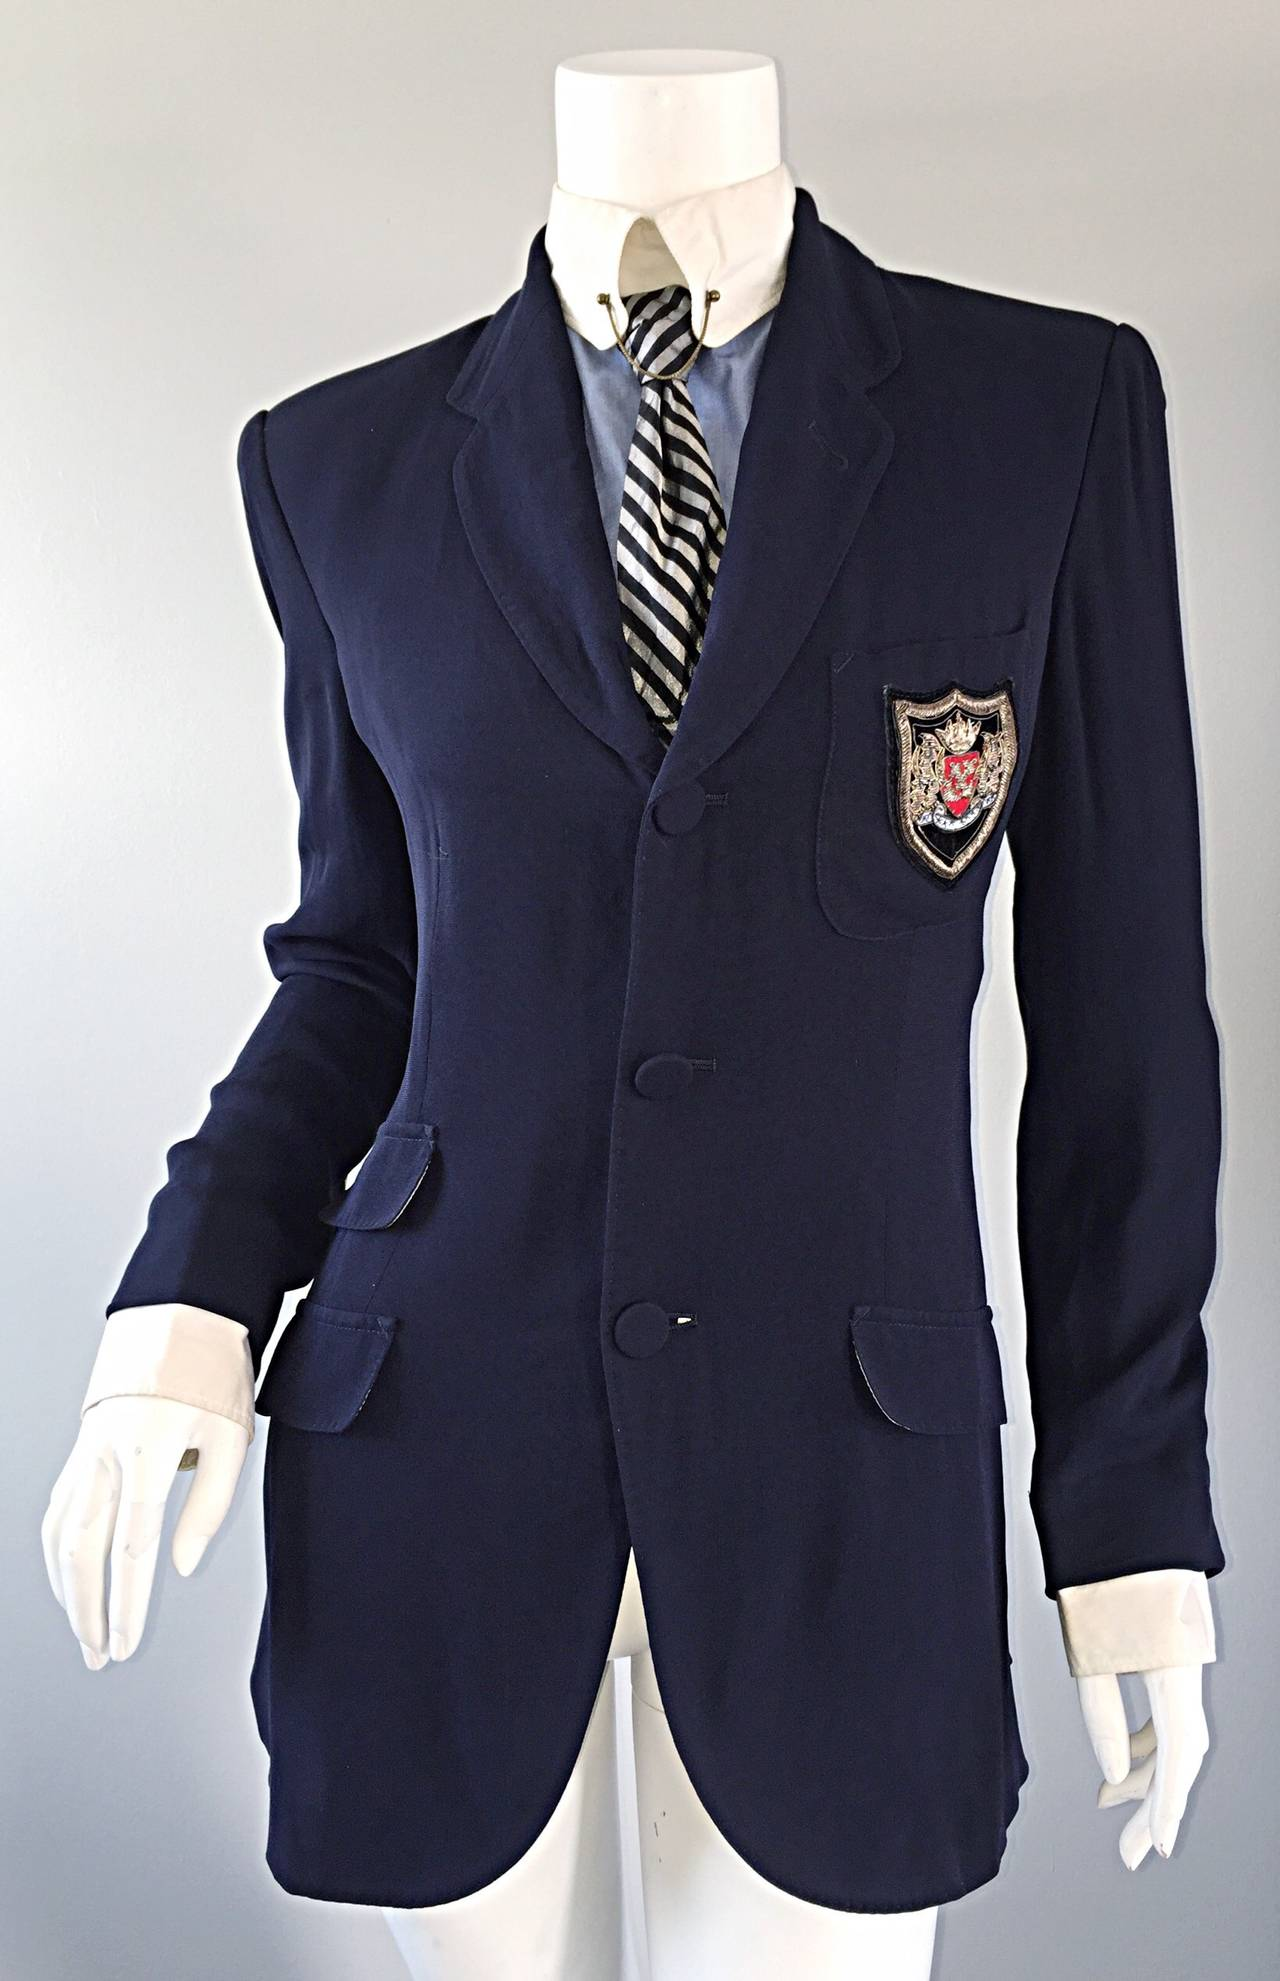 Extremely Rare Vintage Jean Paul Gaultier ' Schoolboy ' All - In - One Blazer 8